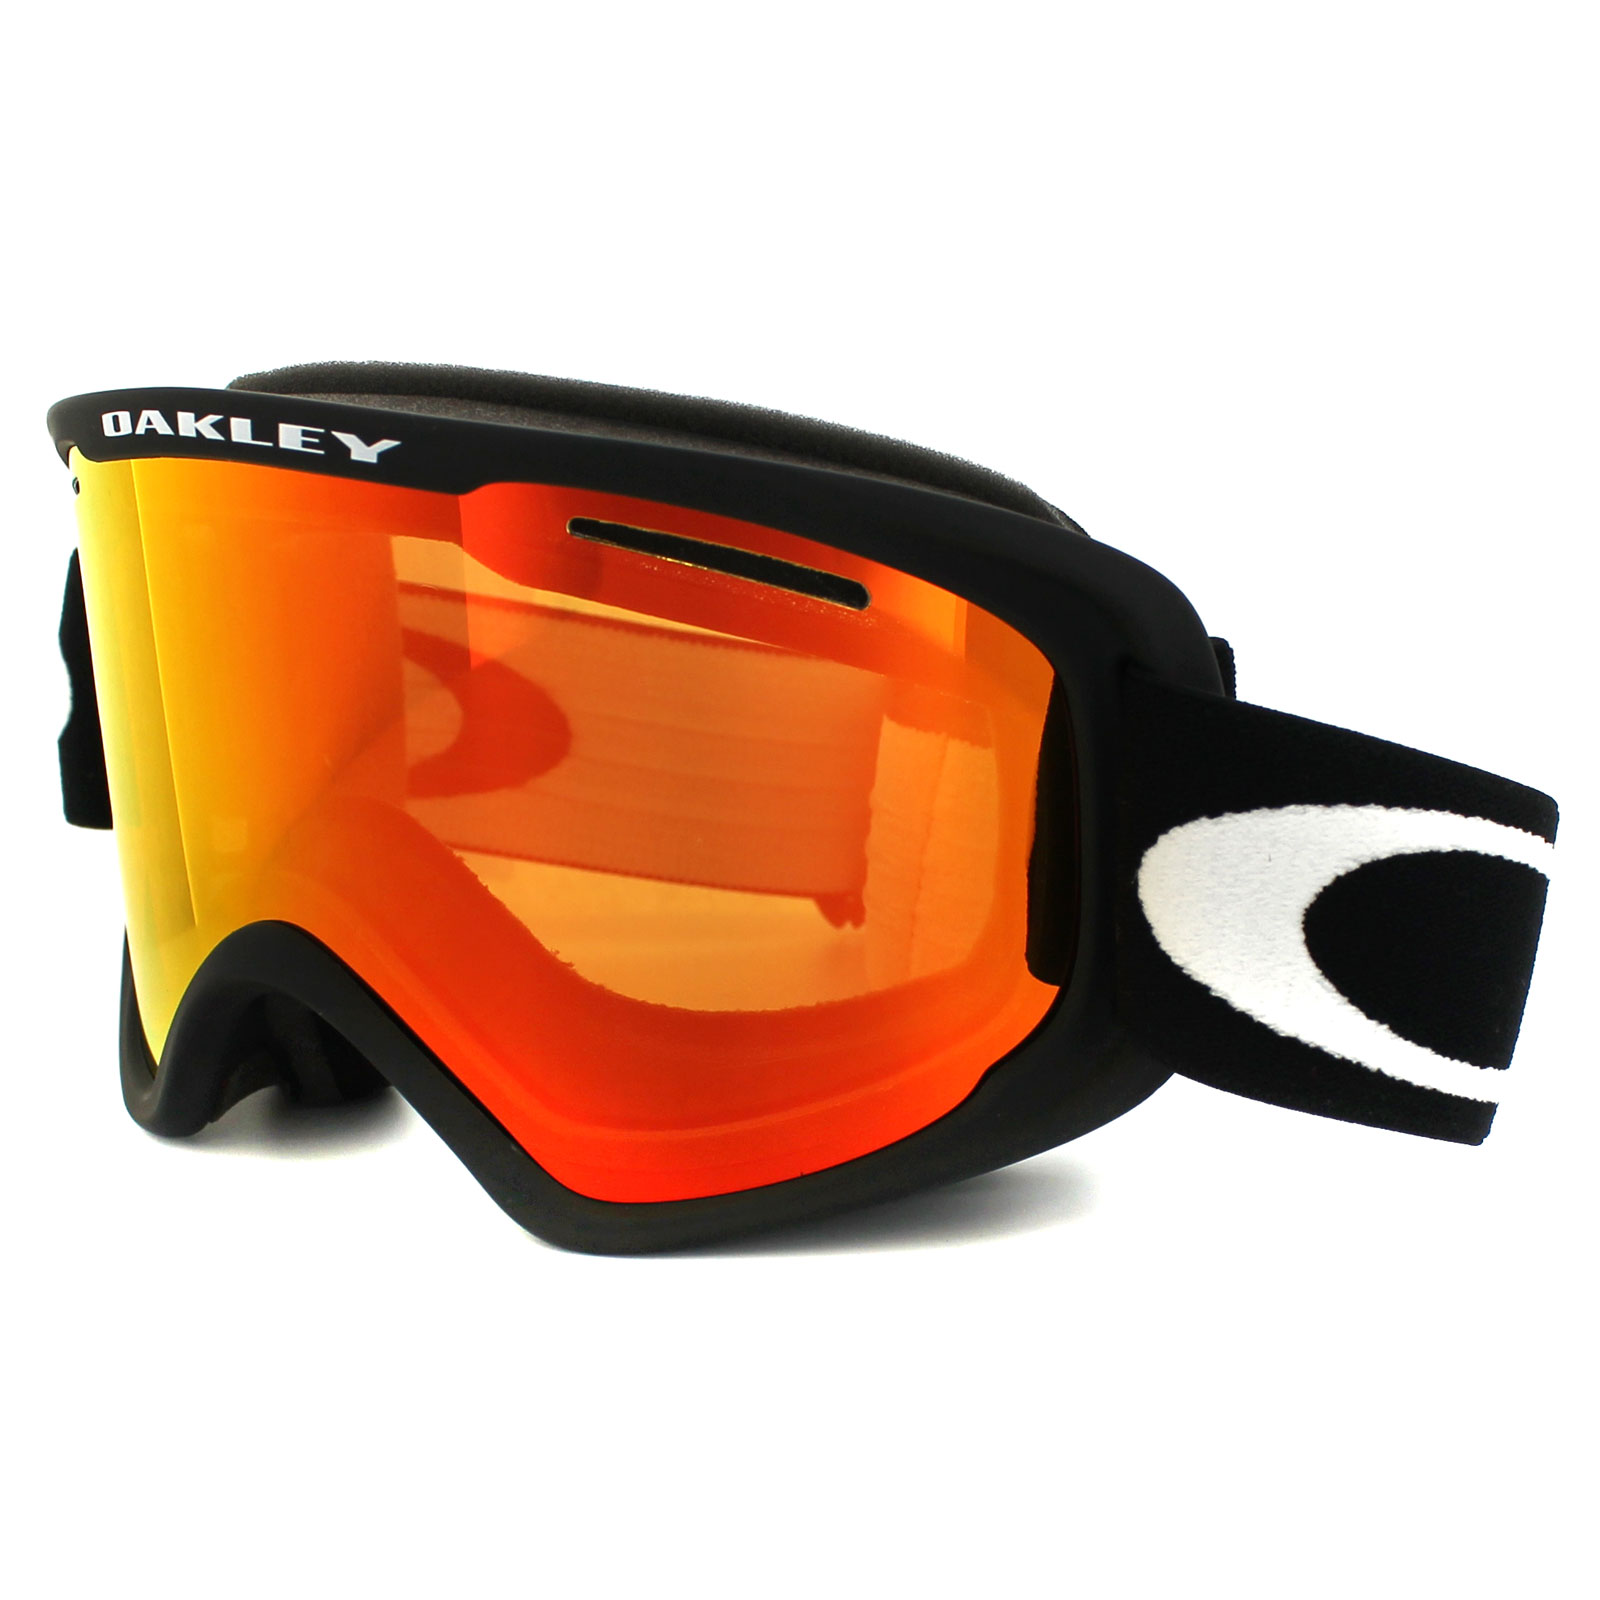 oakley ski helmets  Cheap Oakley 02 XM Ski Goggles - Discounted Sunglasses